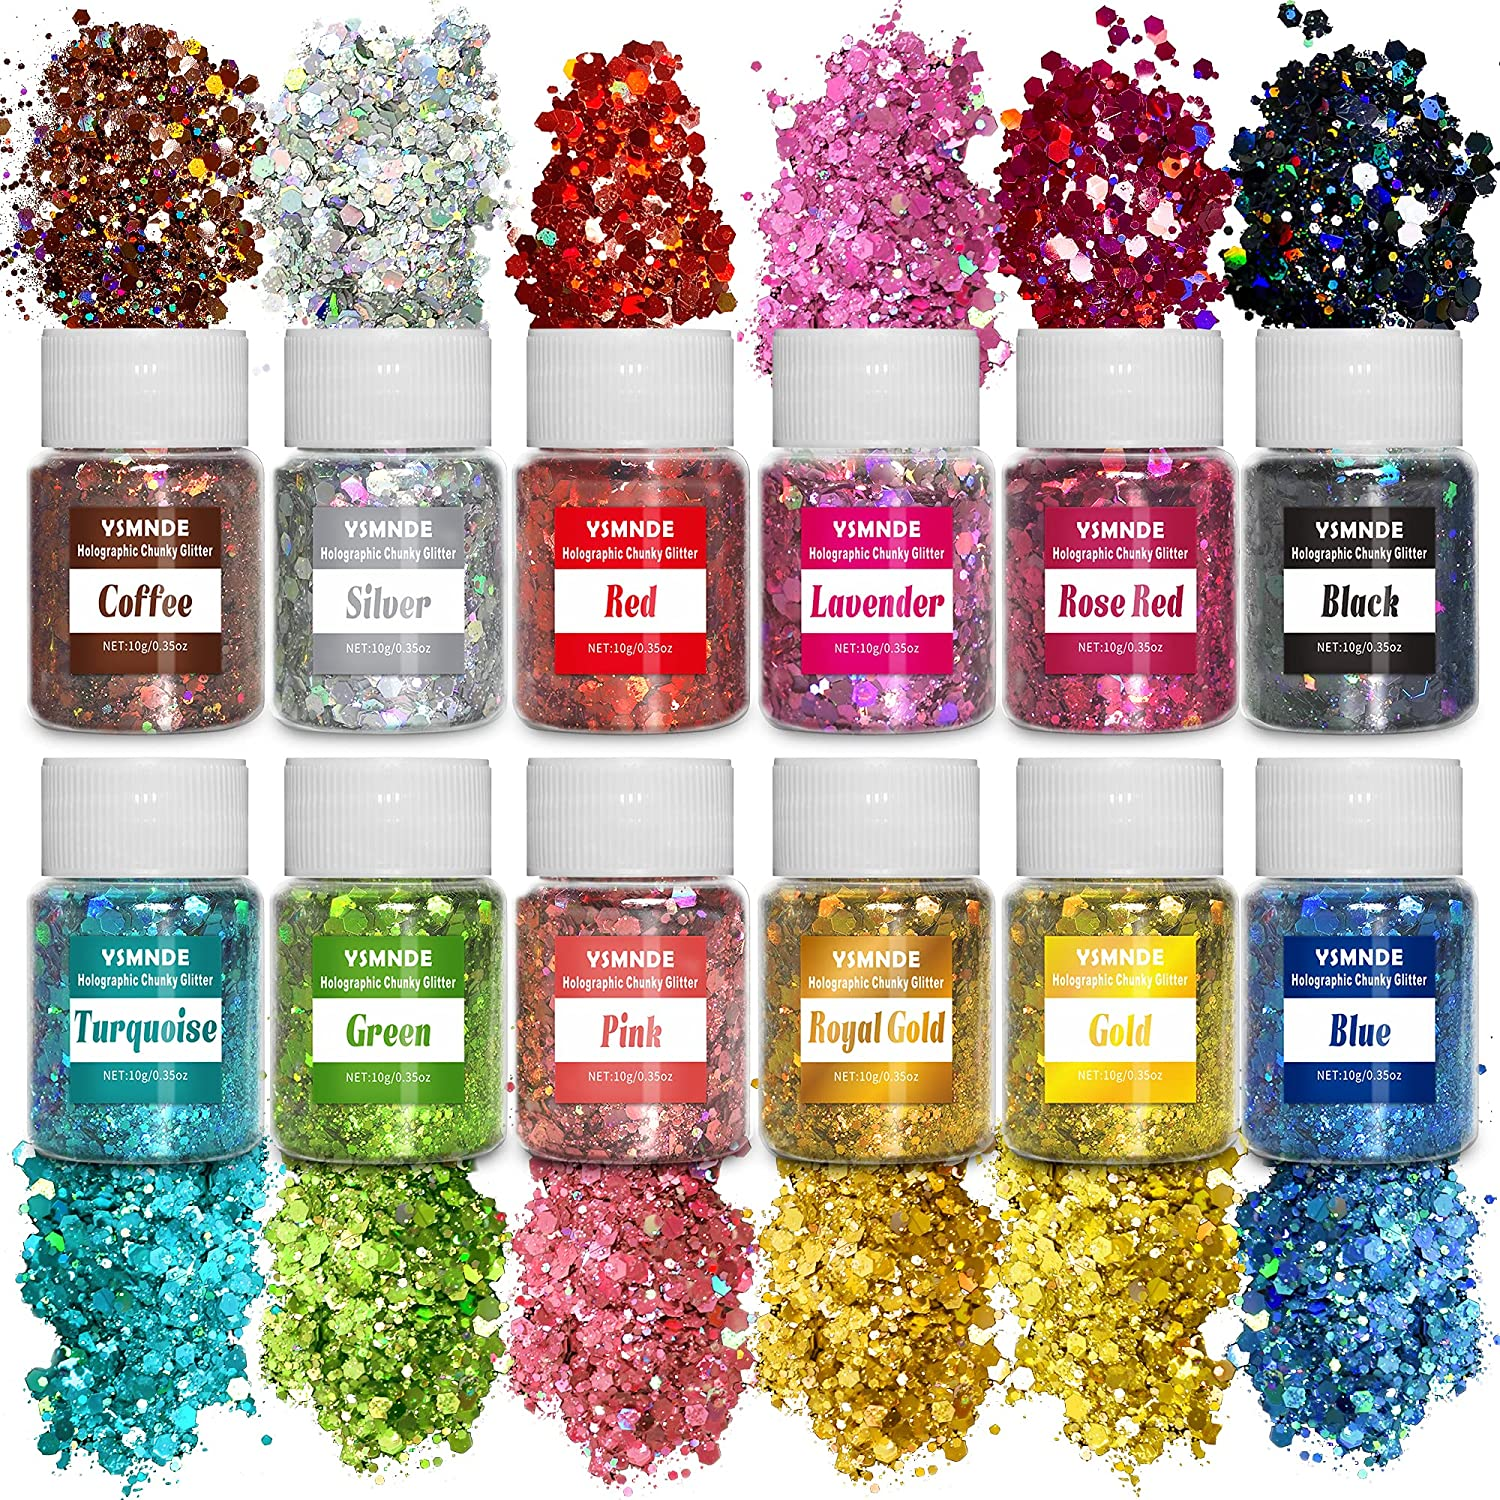 safety Holographic Chunky Glitter 12 Colors 120g Craft Translated Cosmetic YSMNDE